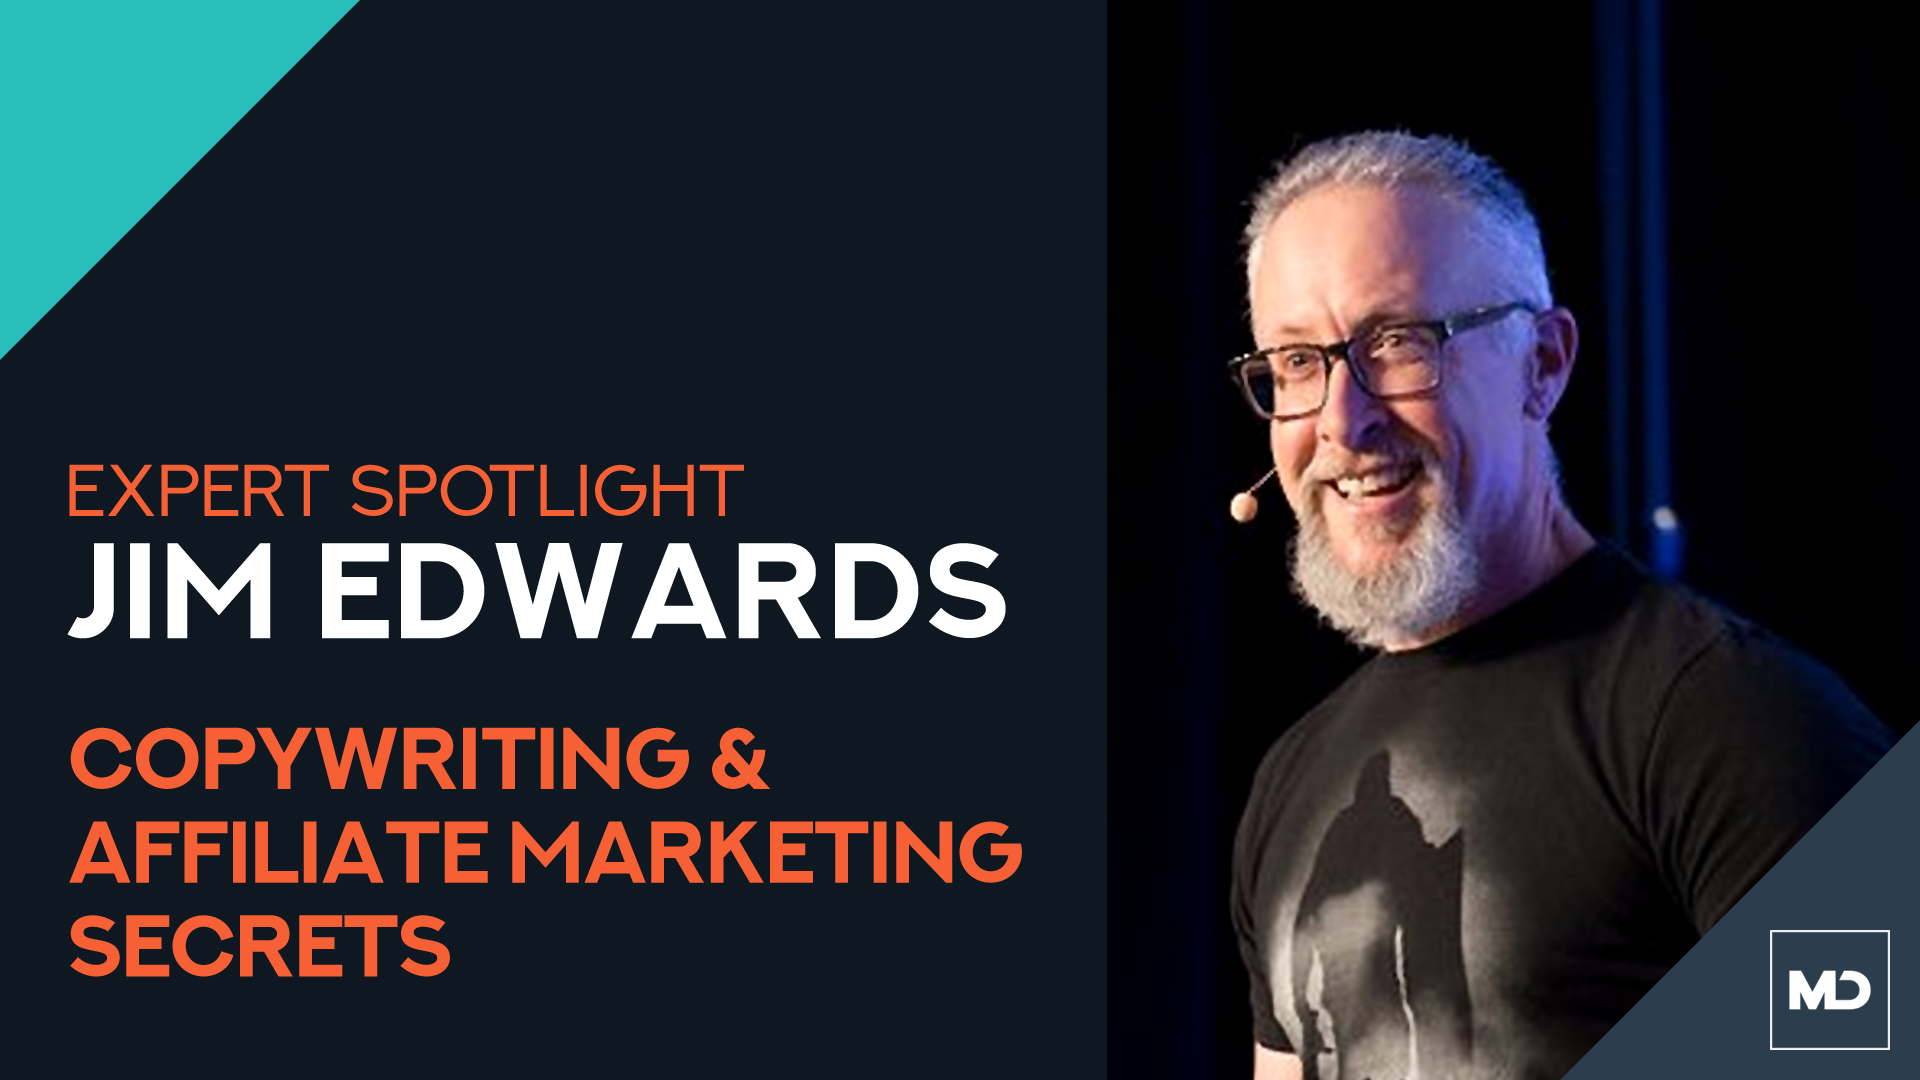 Jim Edwards - Expert Spotlight